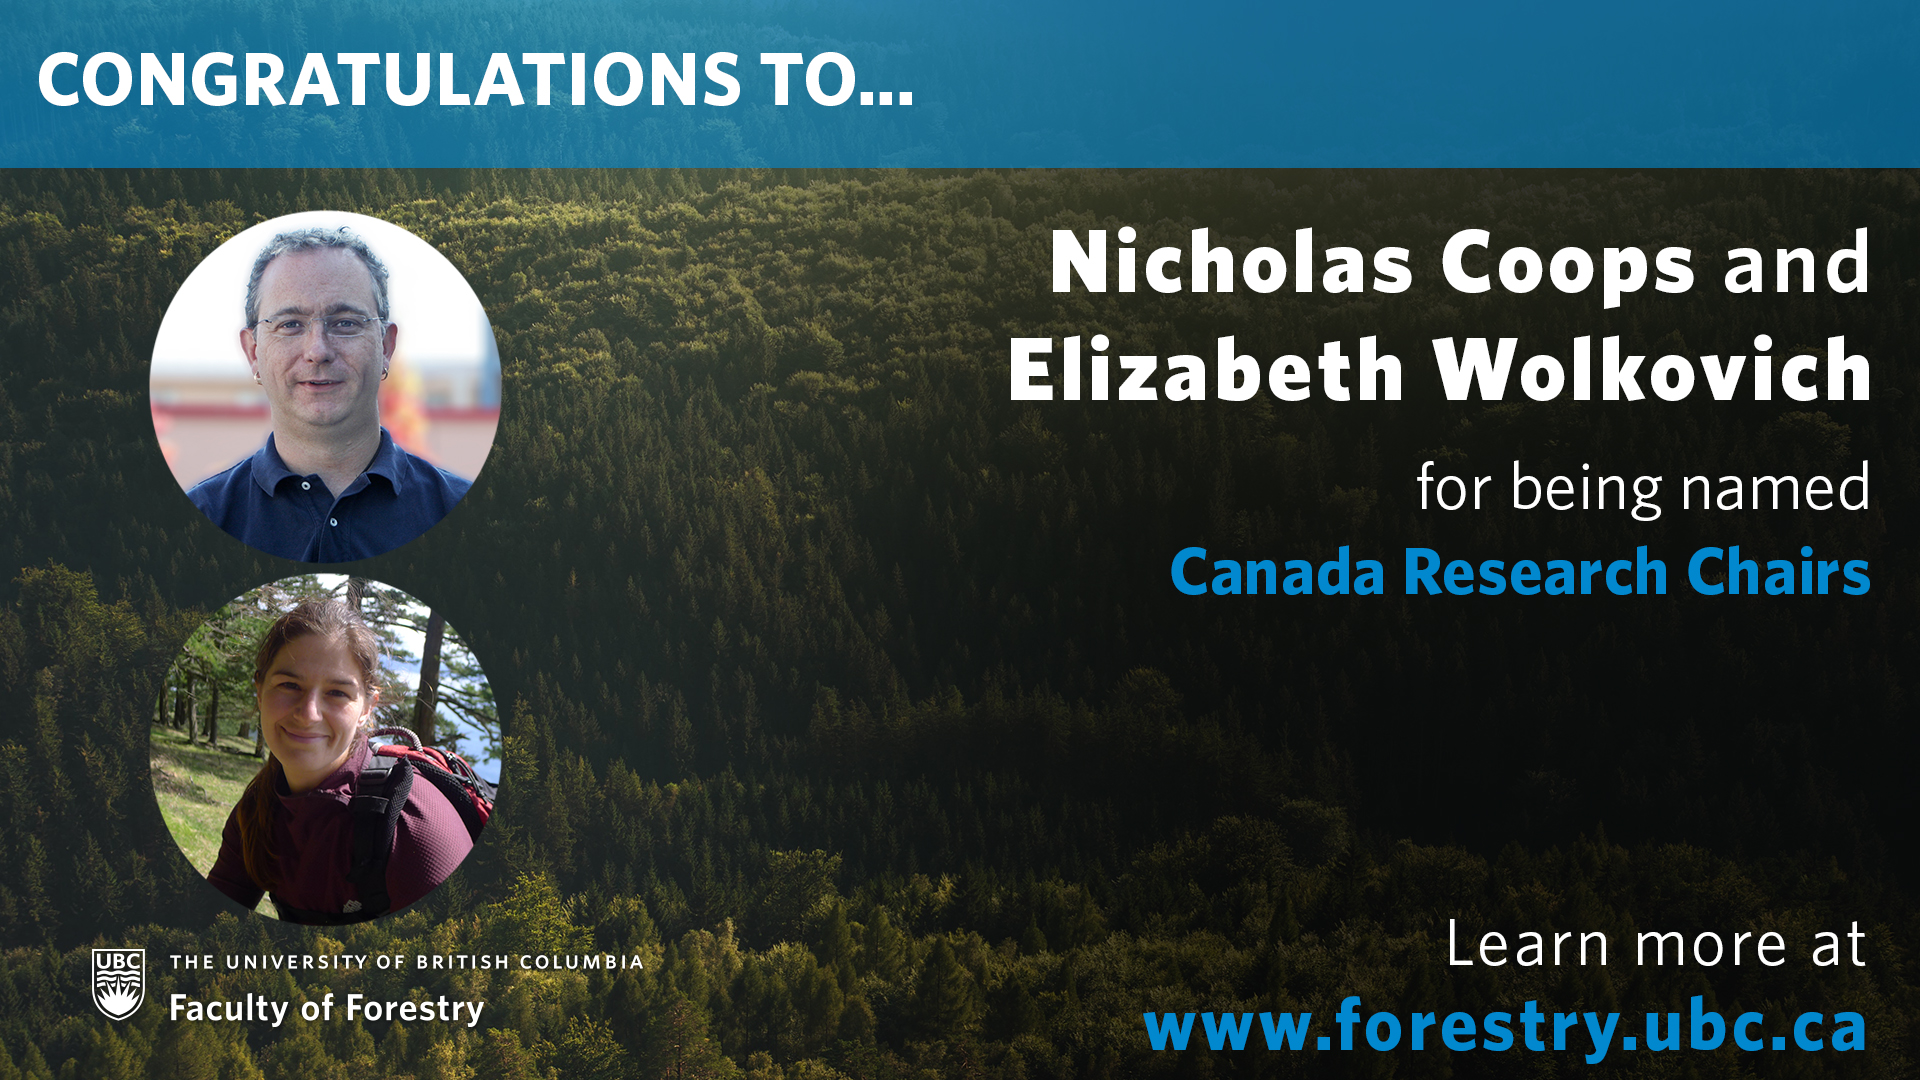 Congratulations to Our Canada Research Chairs